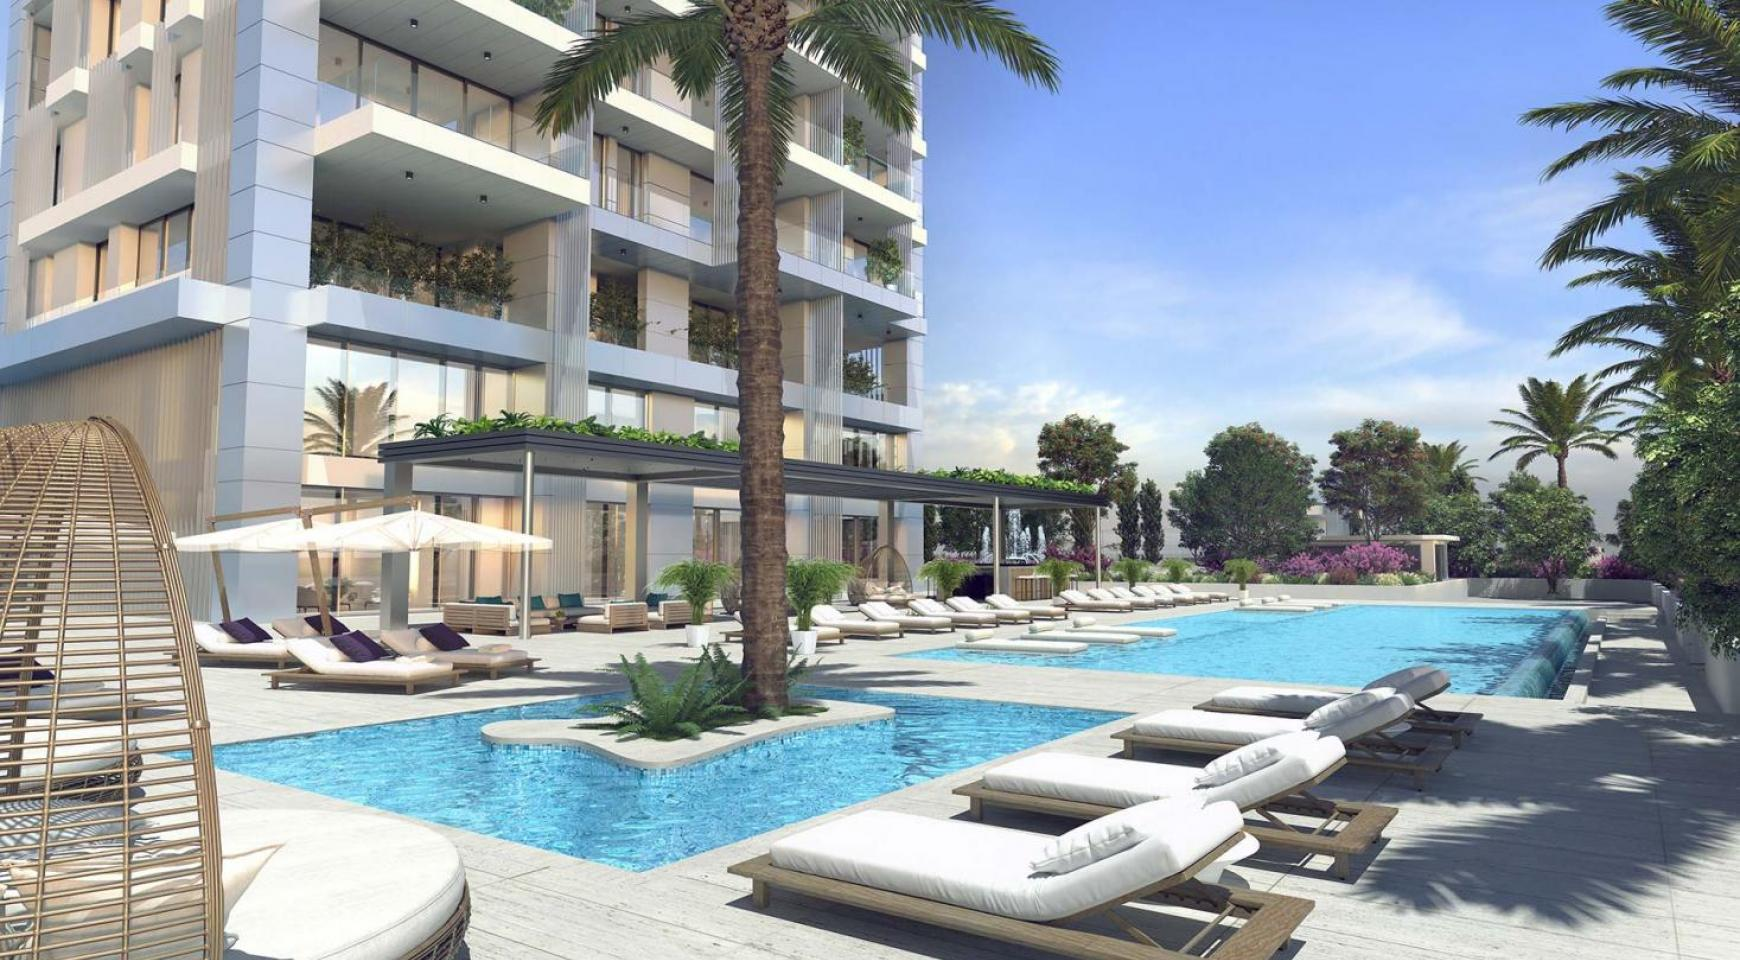 Contemporary 2 Bedroom Apartment with Sea Views in a Luxurious Complex - 13